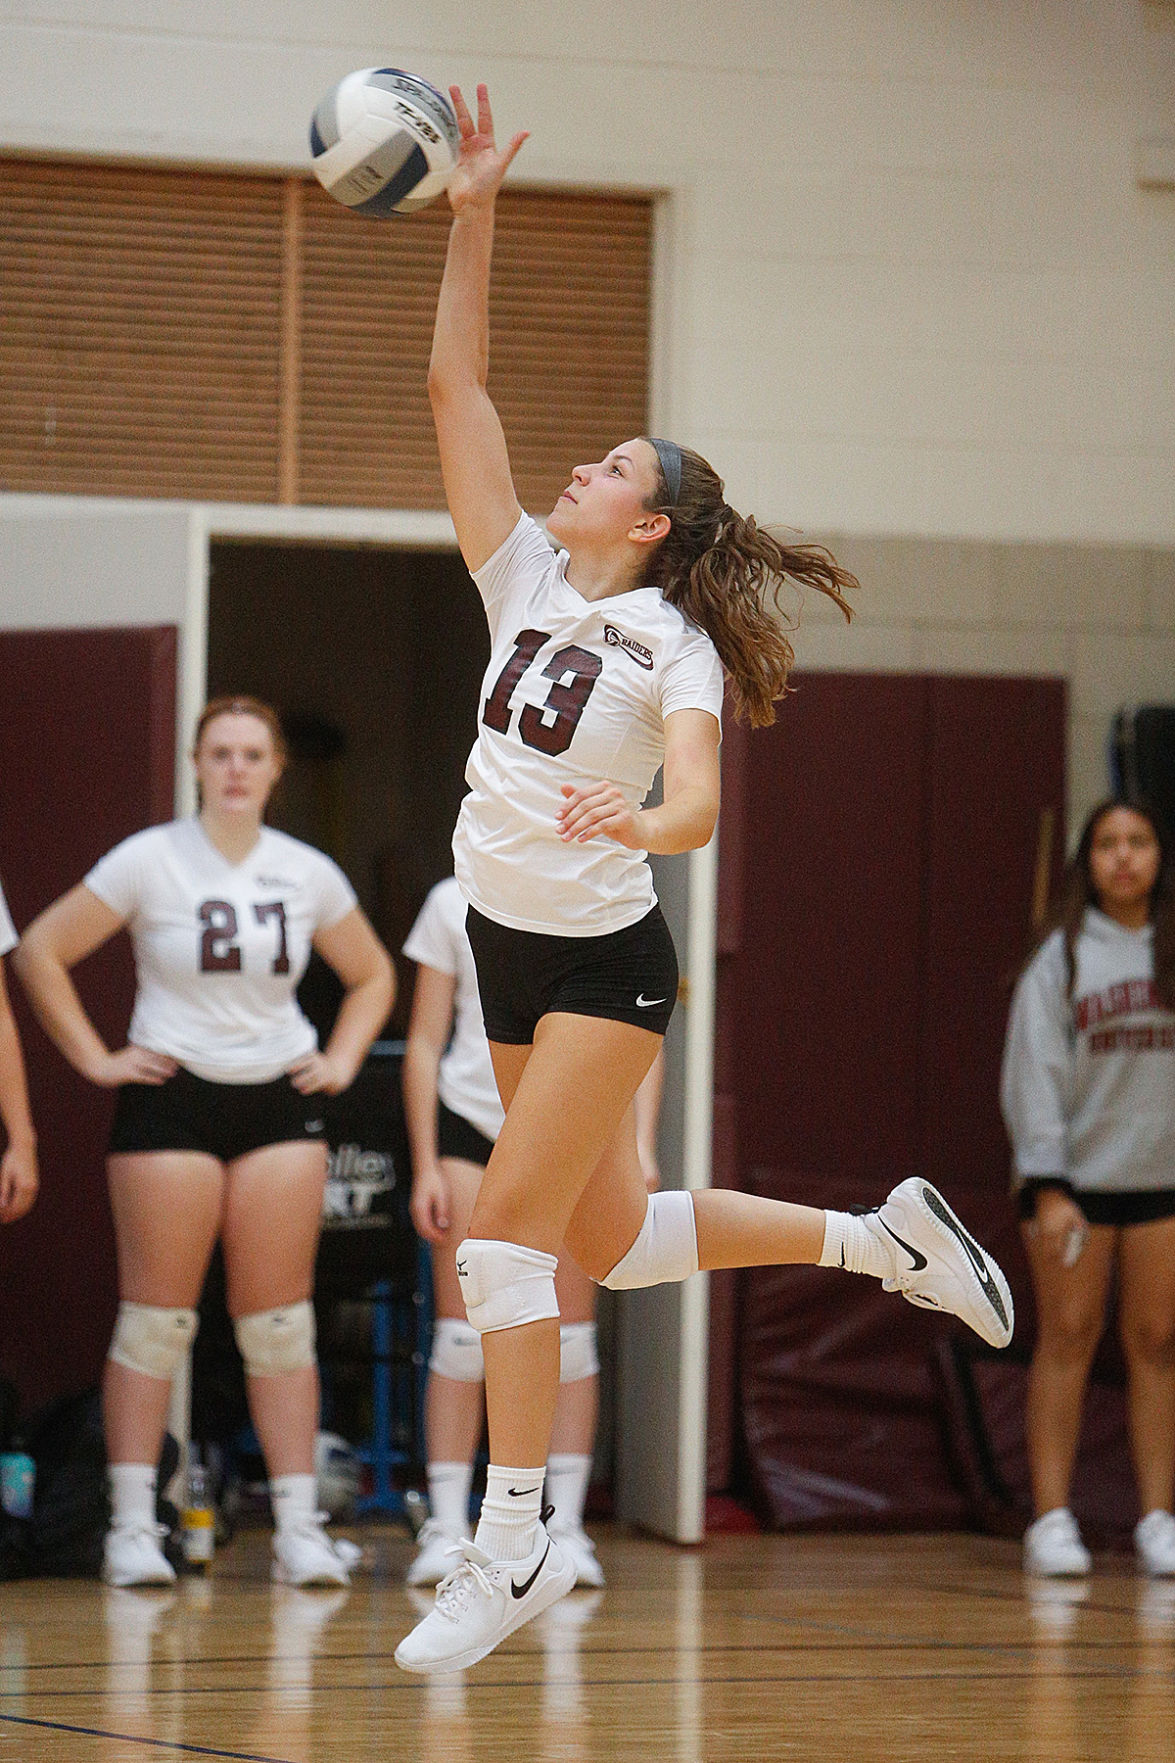 Scarsdale volleyball